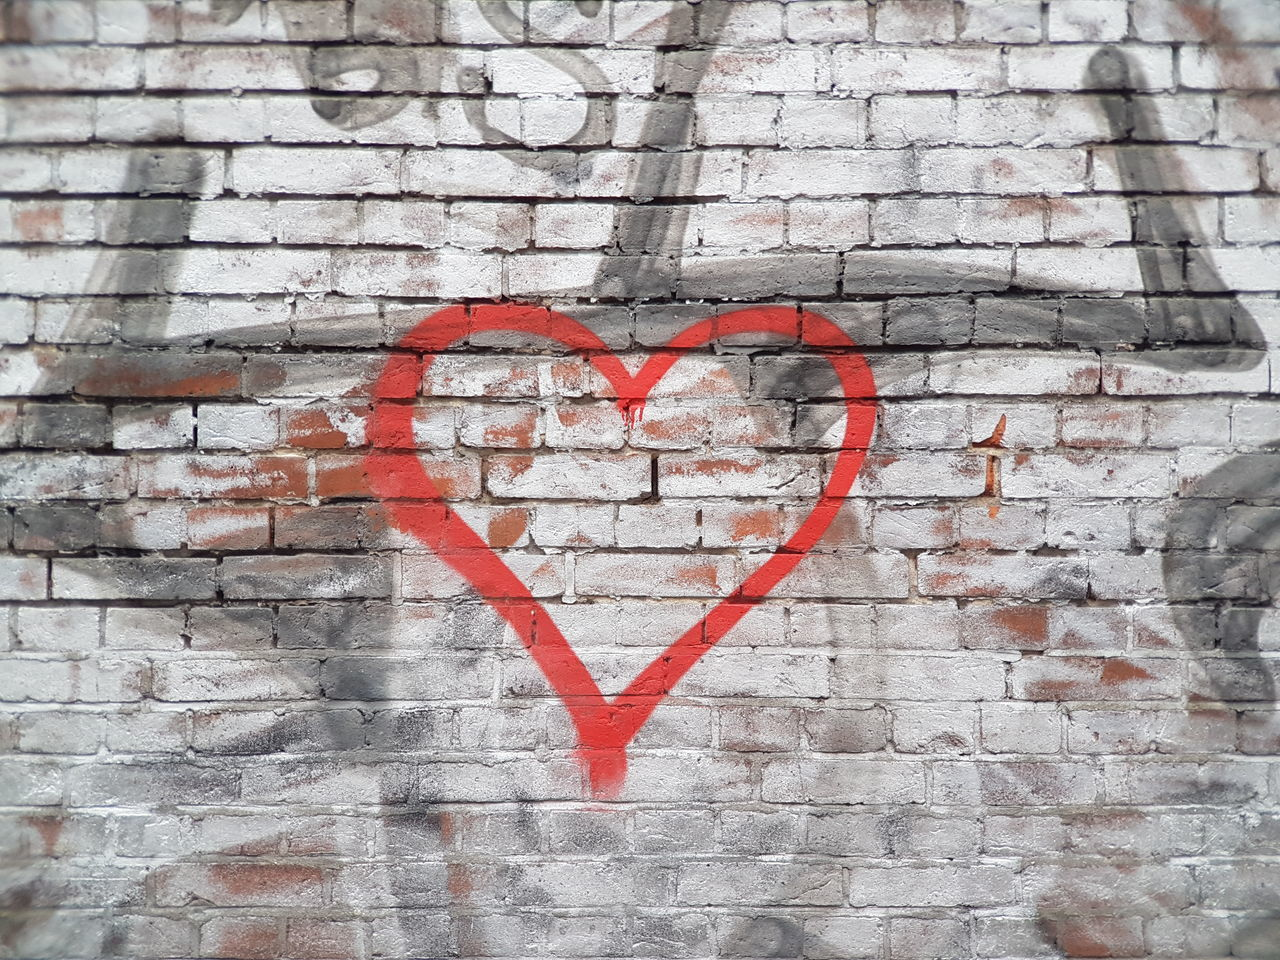 Love Heart Shape Red Outdoors Backgrounds Spray Paint Simple Psycology  Wall Old Buildings Old Walls Love Heart ❤ Heart Brickporn Brick Wall Bricks Love And Freedom Sign Details City Signs